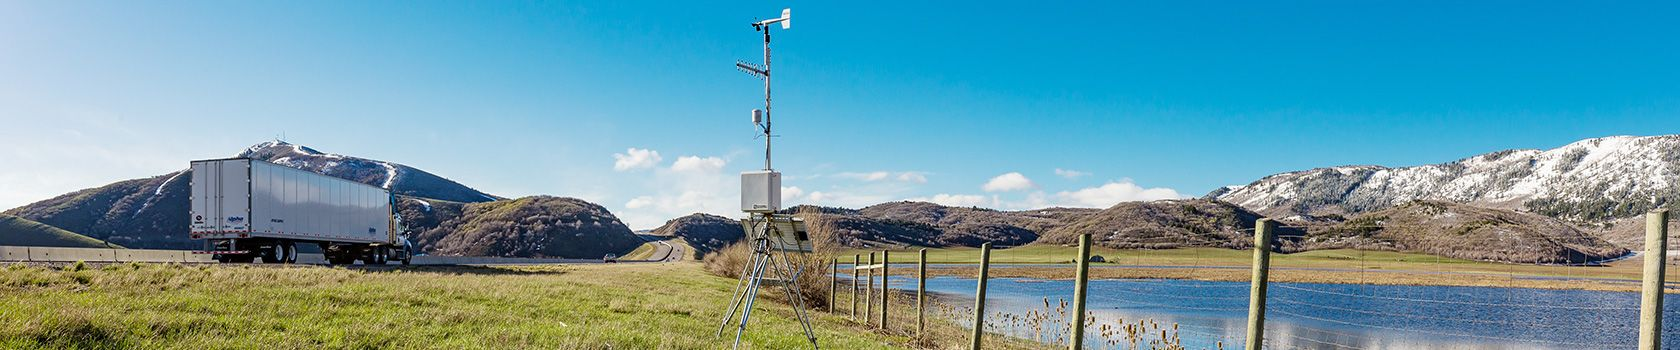 Road Weather Information Systems (RWIS) Road-weather information systems and weather stations